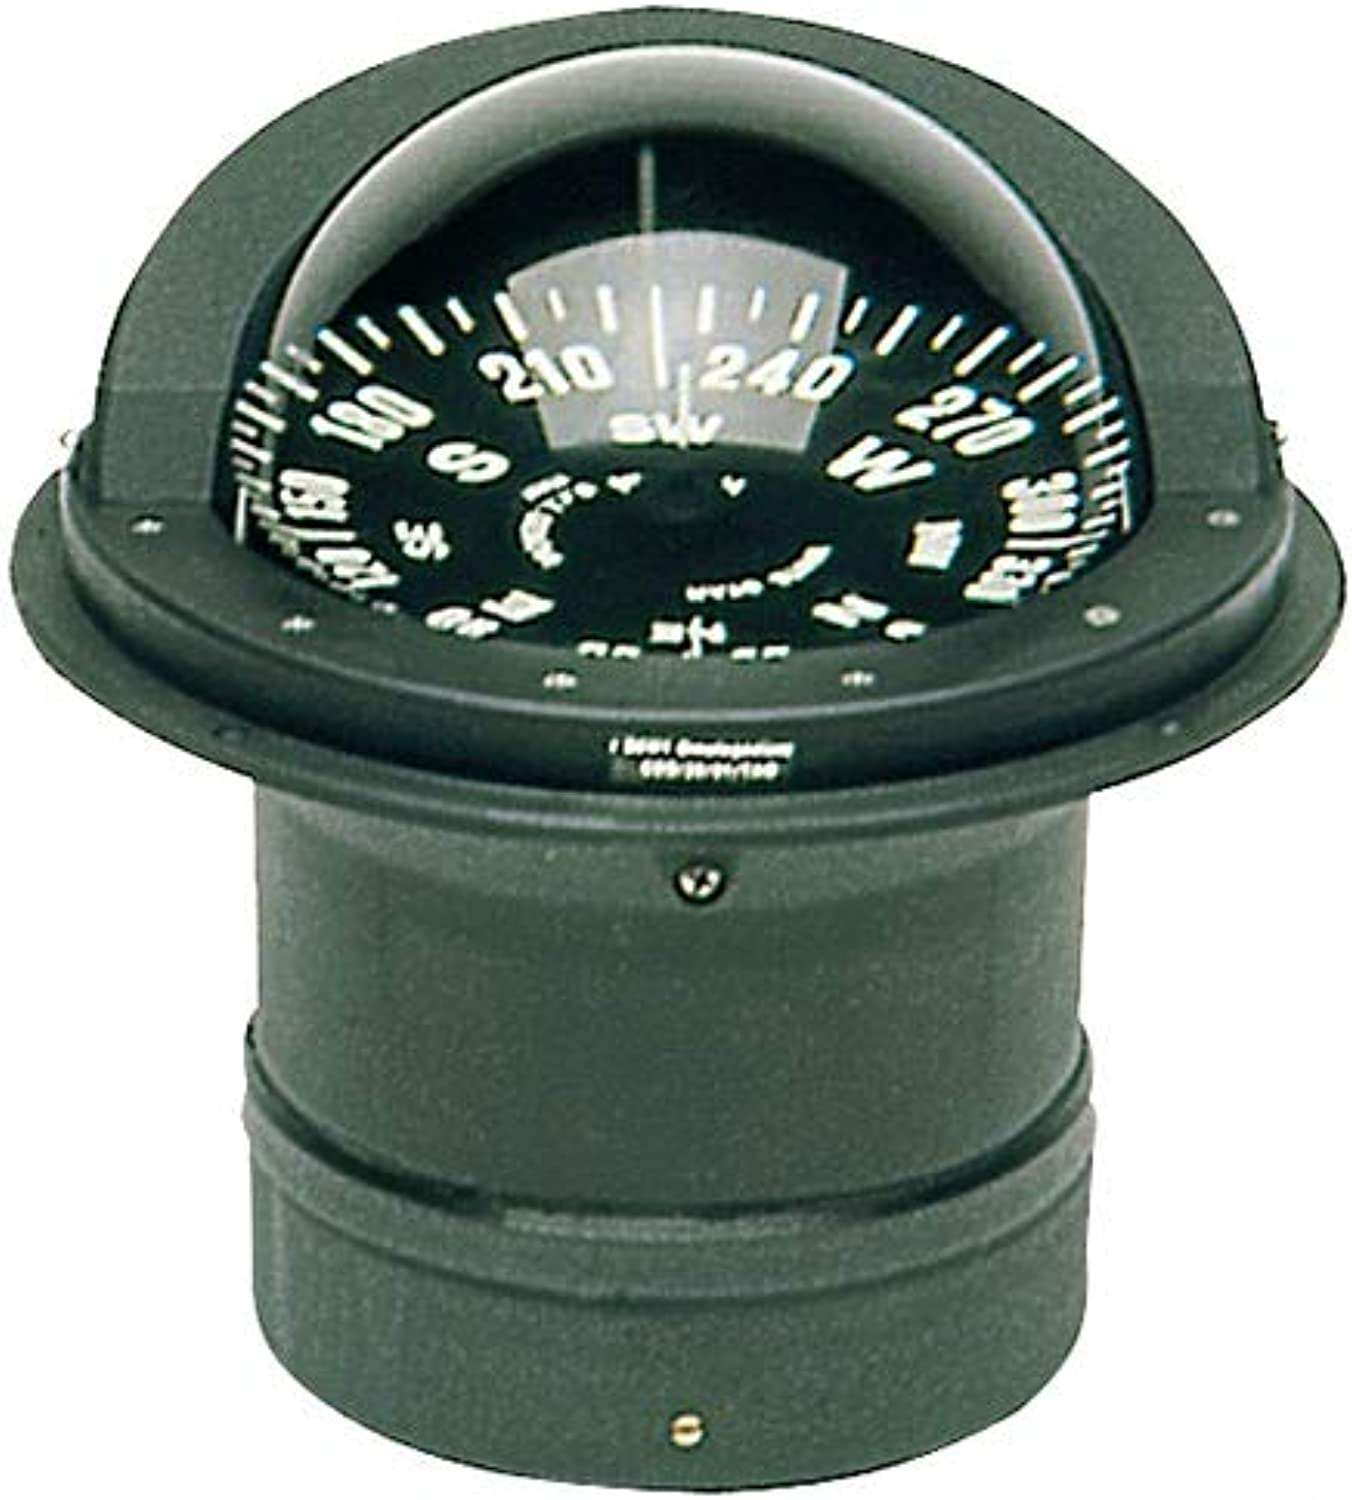 RIVIERA Boat Marine High Speed Compass 6 150mm Flat pink